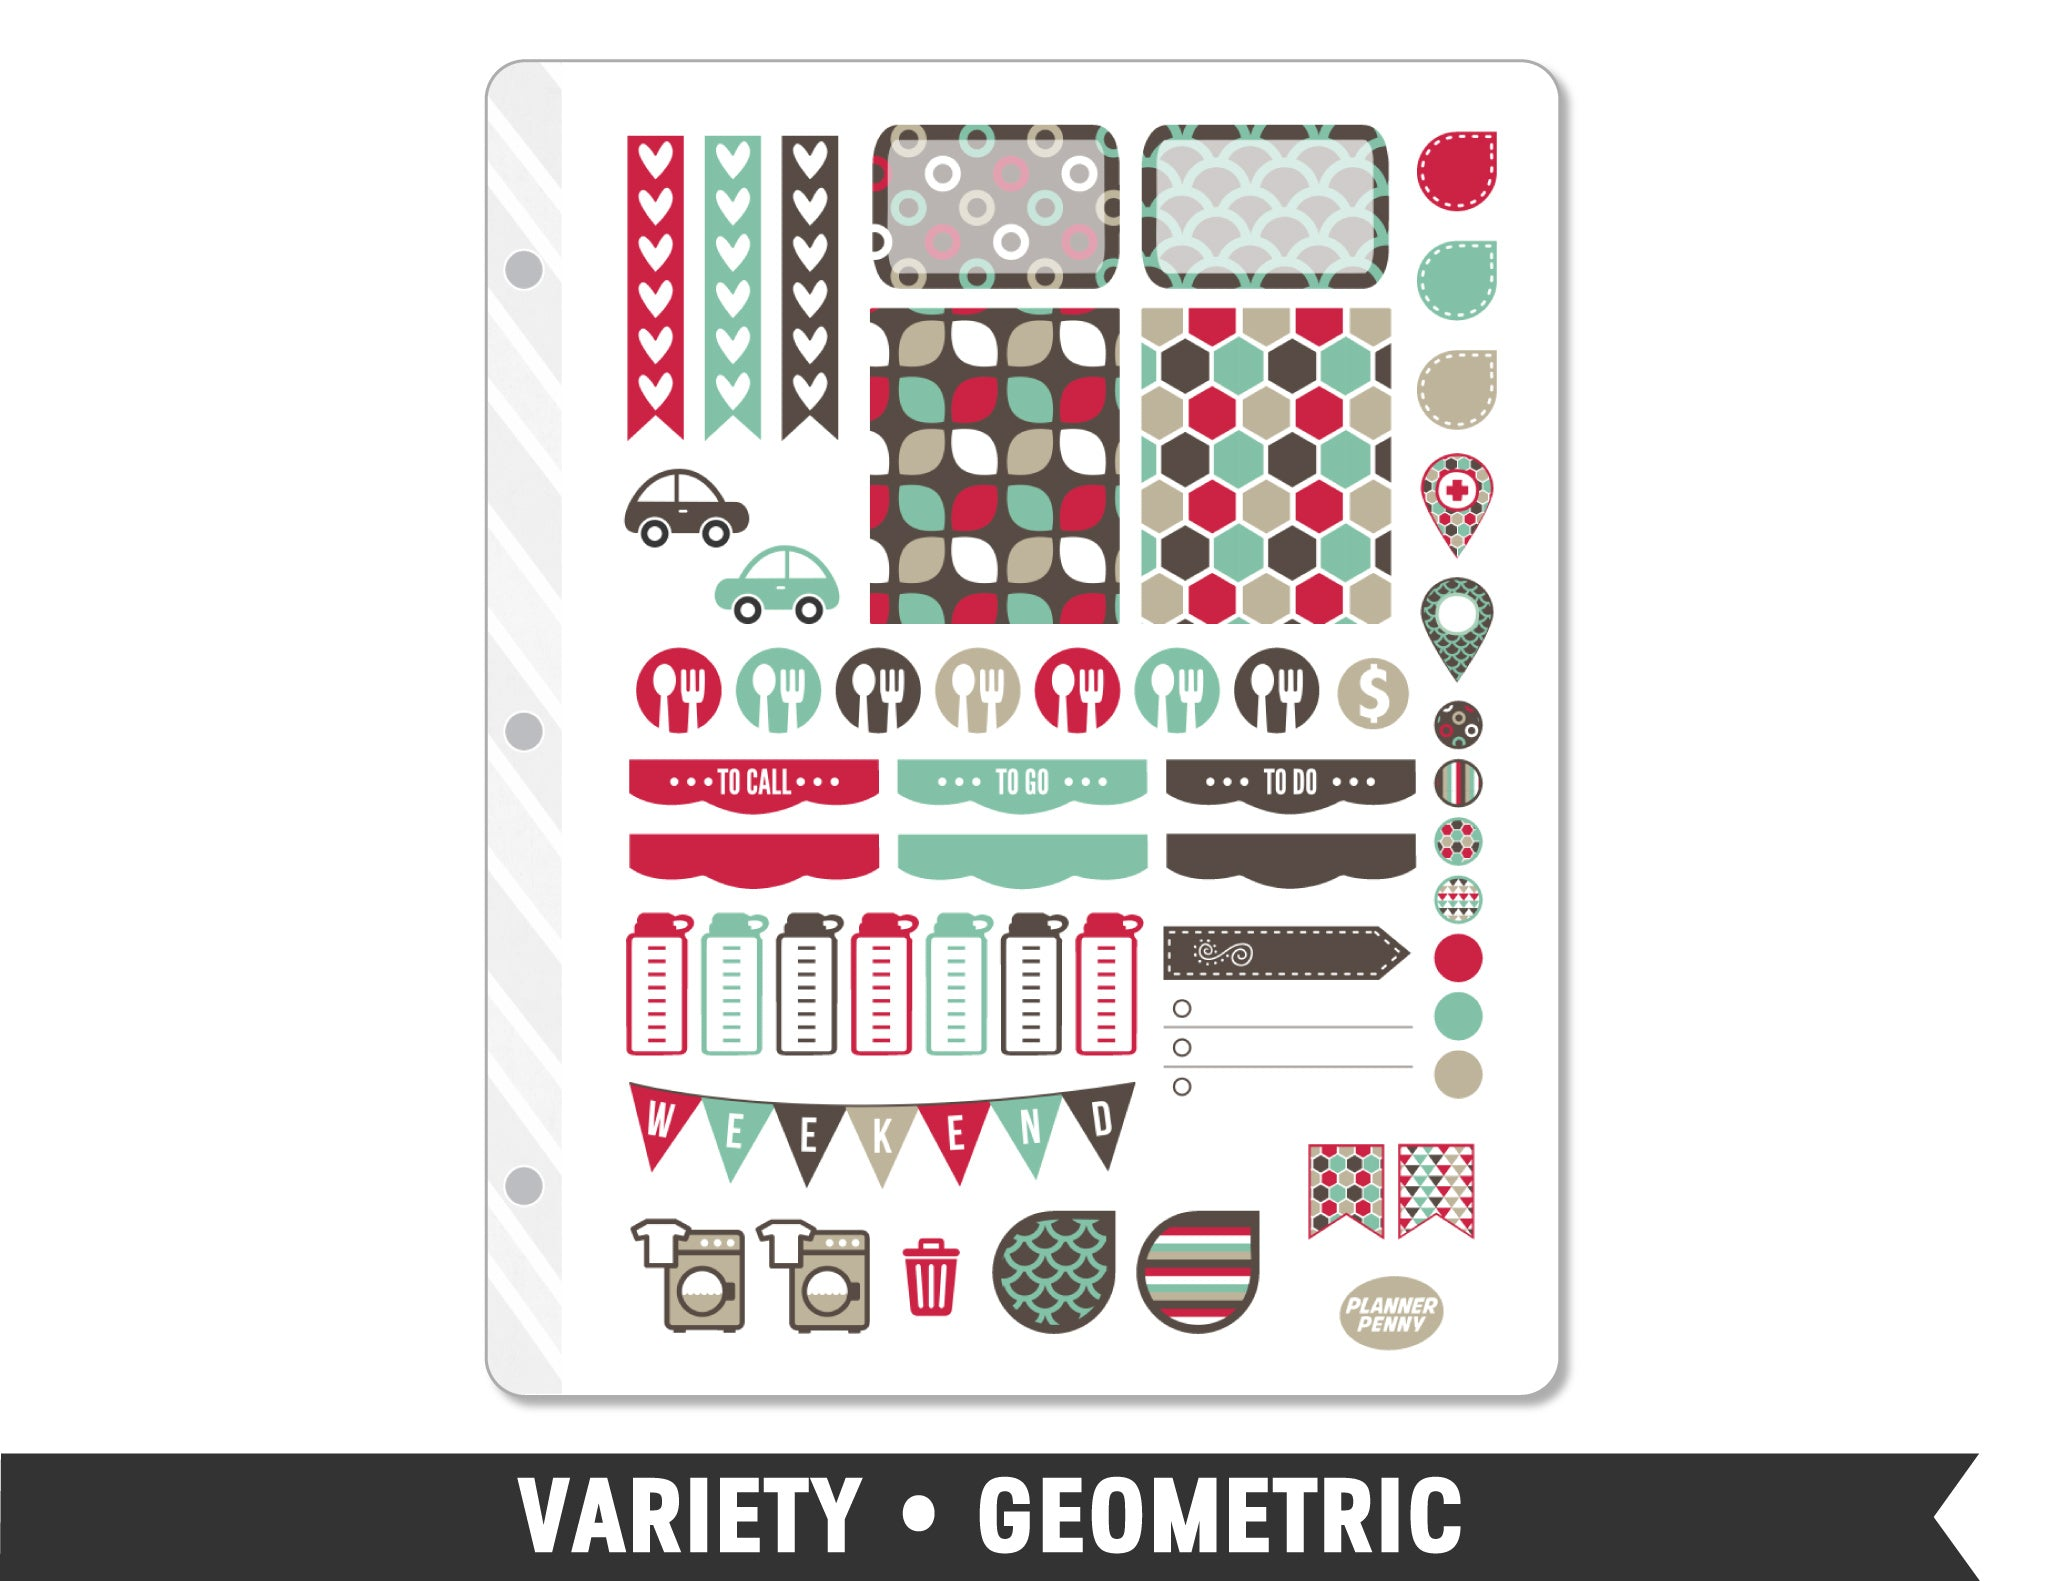 Variety • Geometric Weekly Spread Planner Stickers